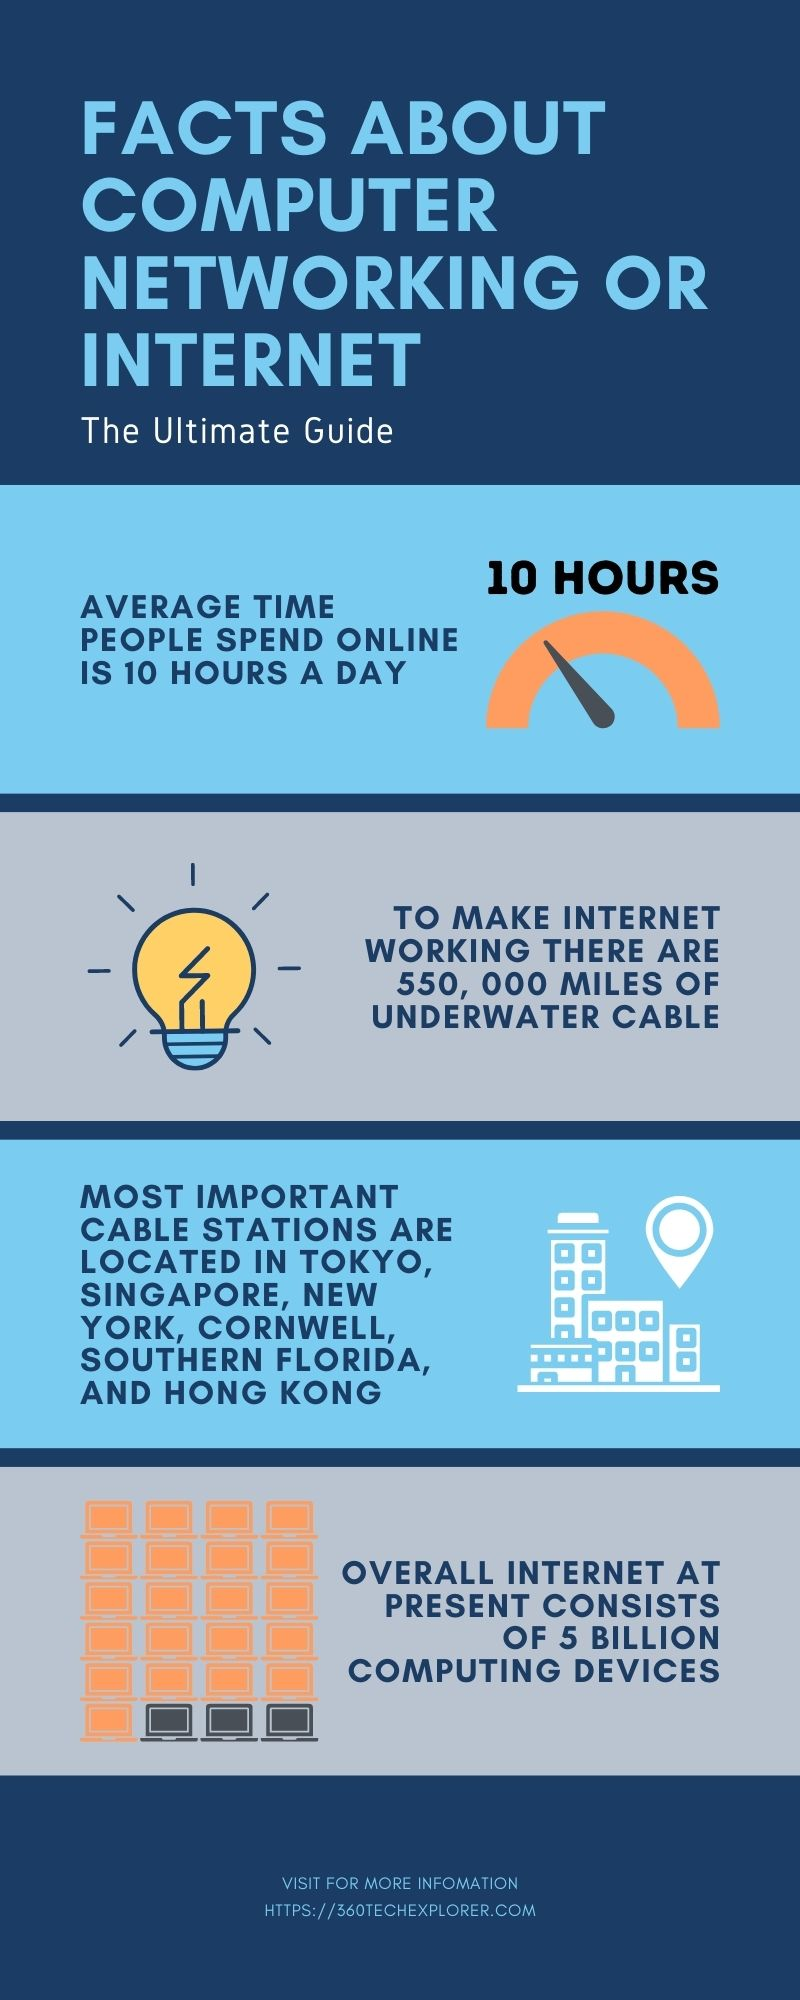 Facts about computer networking or Internet